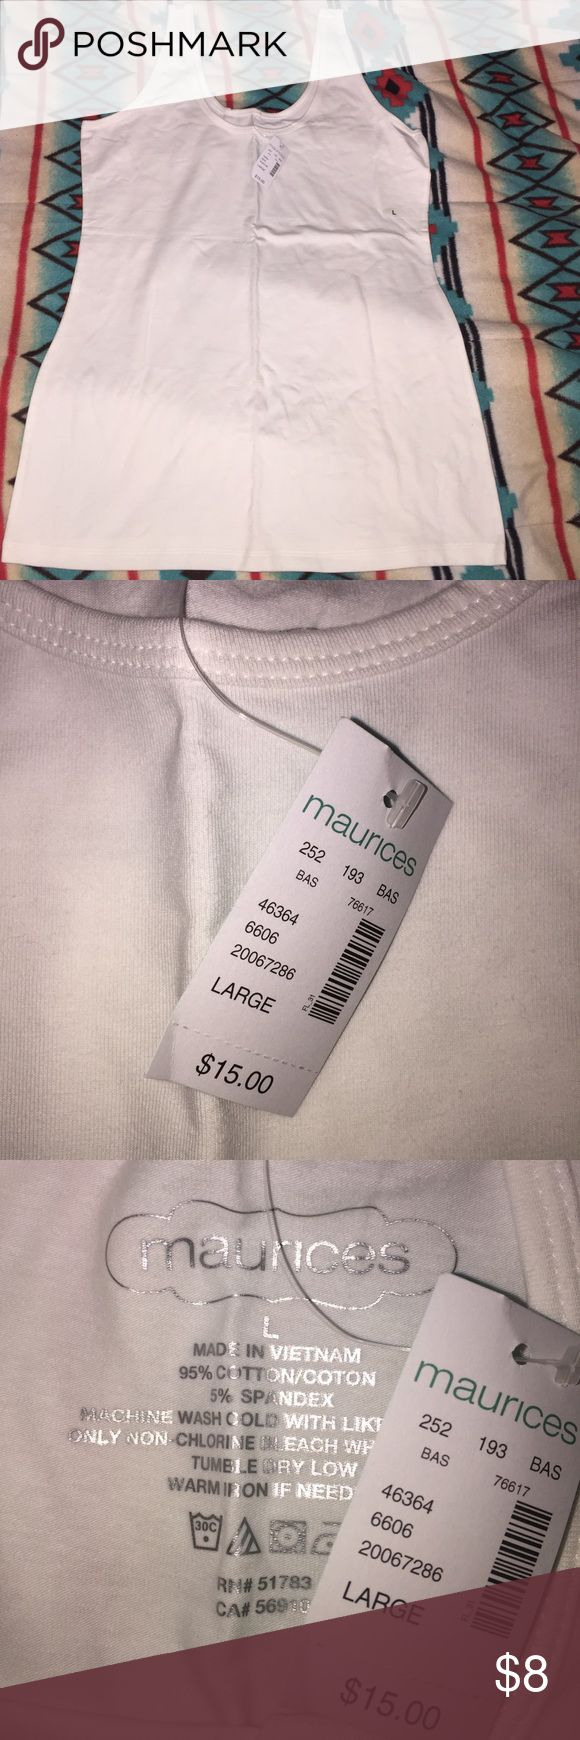 Maurices White Tank Top Maurices White Tank Top in white. Brand new with tags never worn. Maurices Tops Tank Tops